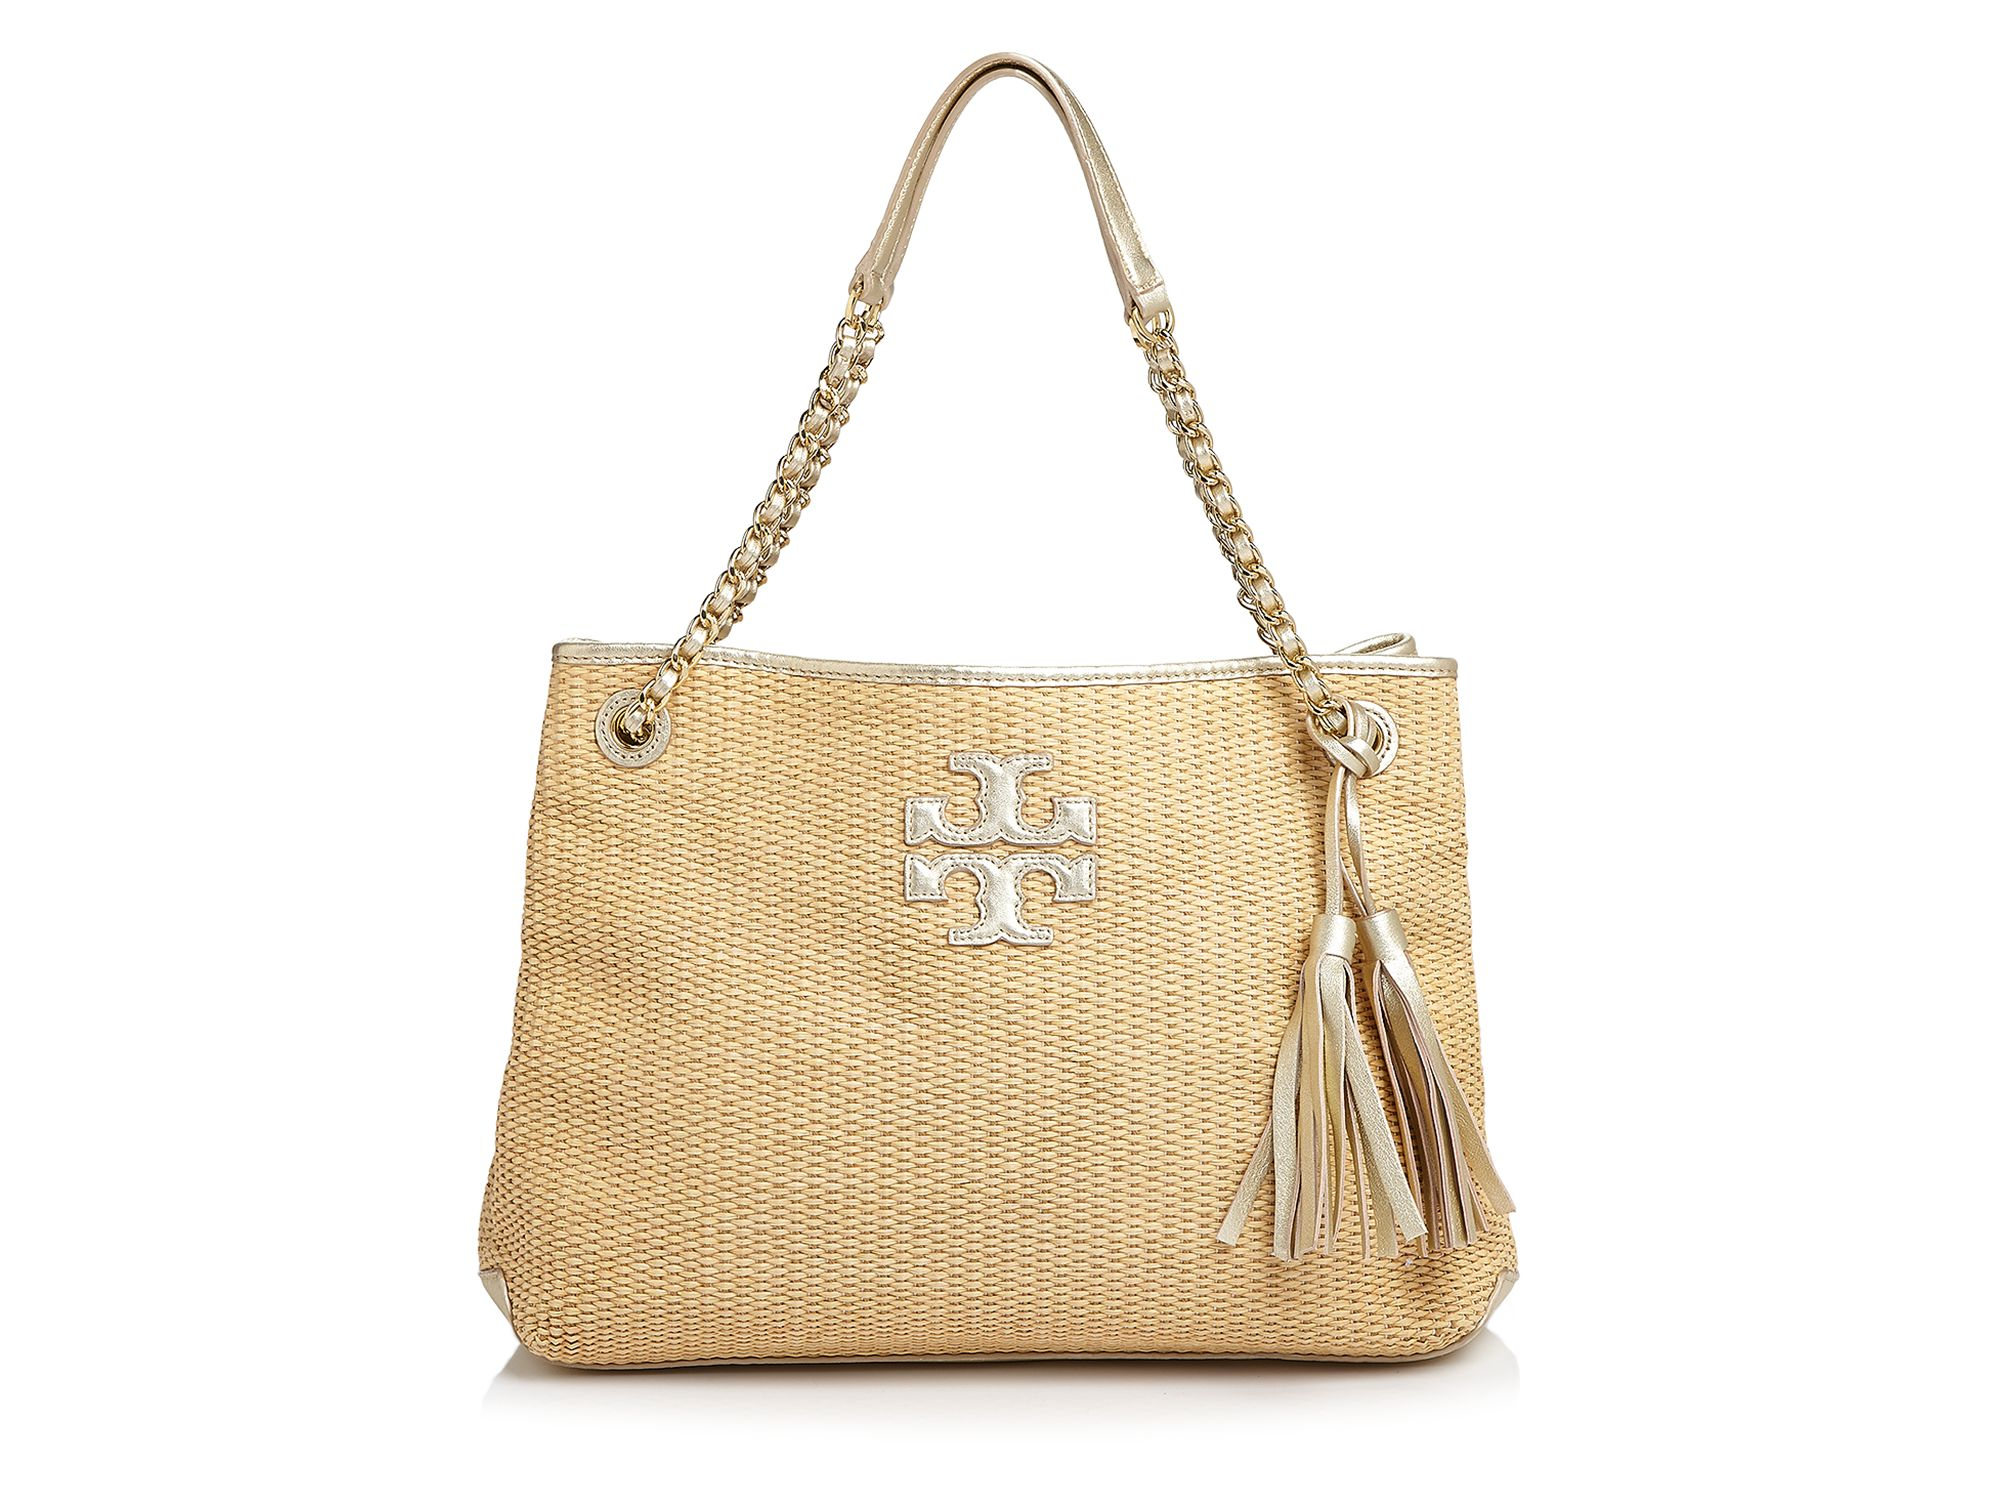 aa0b8471c000 Lyst - Tory Burch Thea Metallic Straw Chain Shoulder Bag in Natural